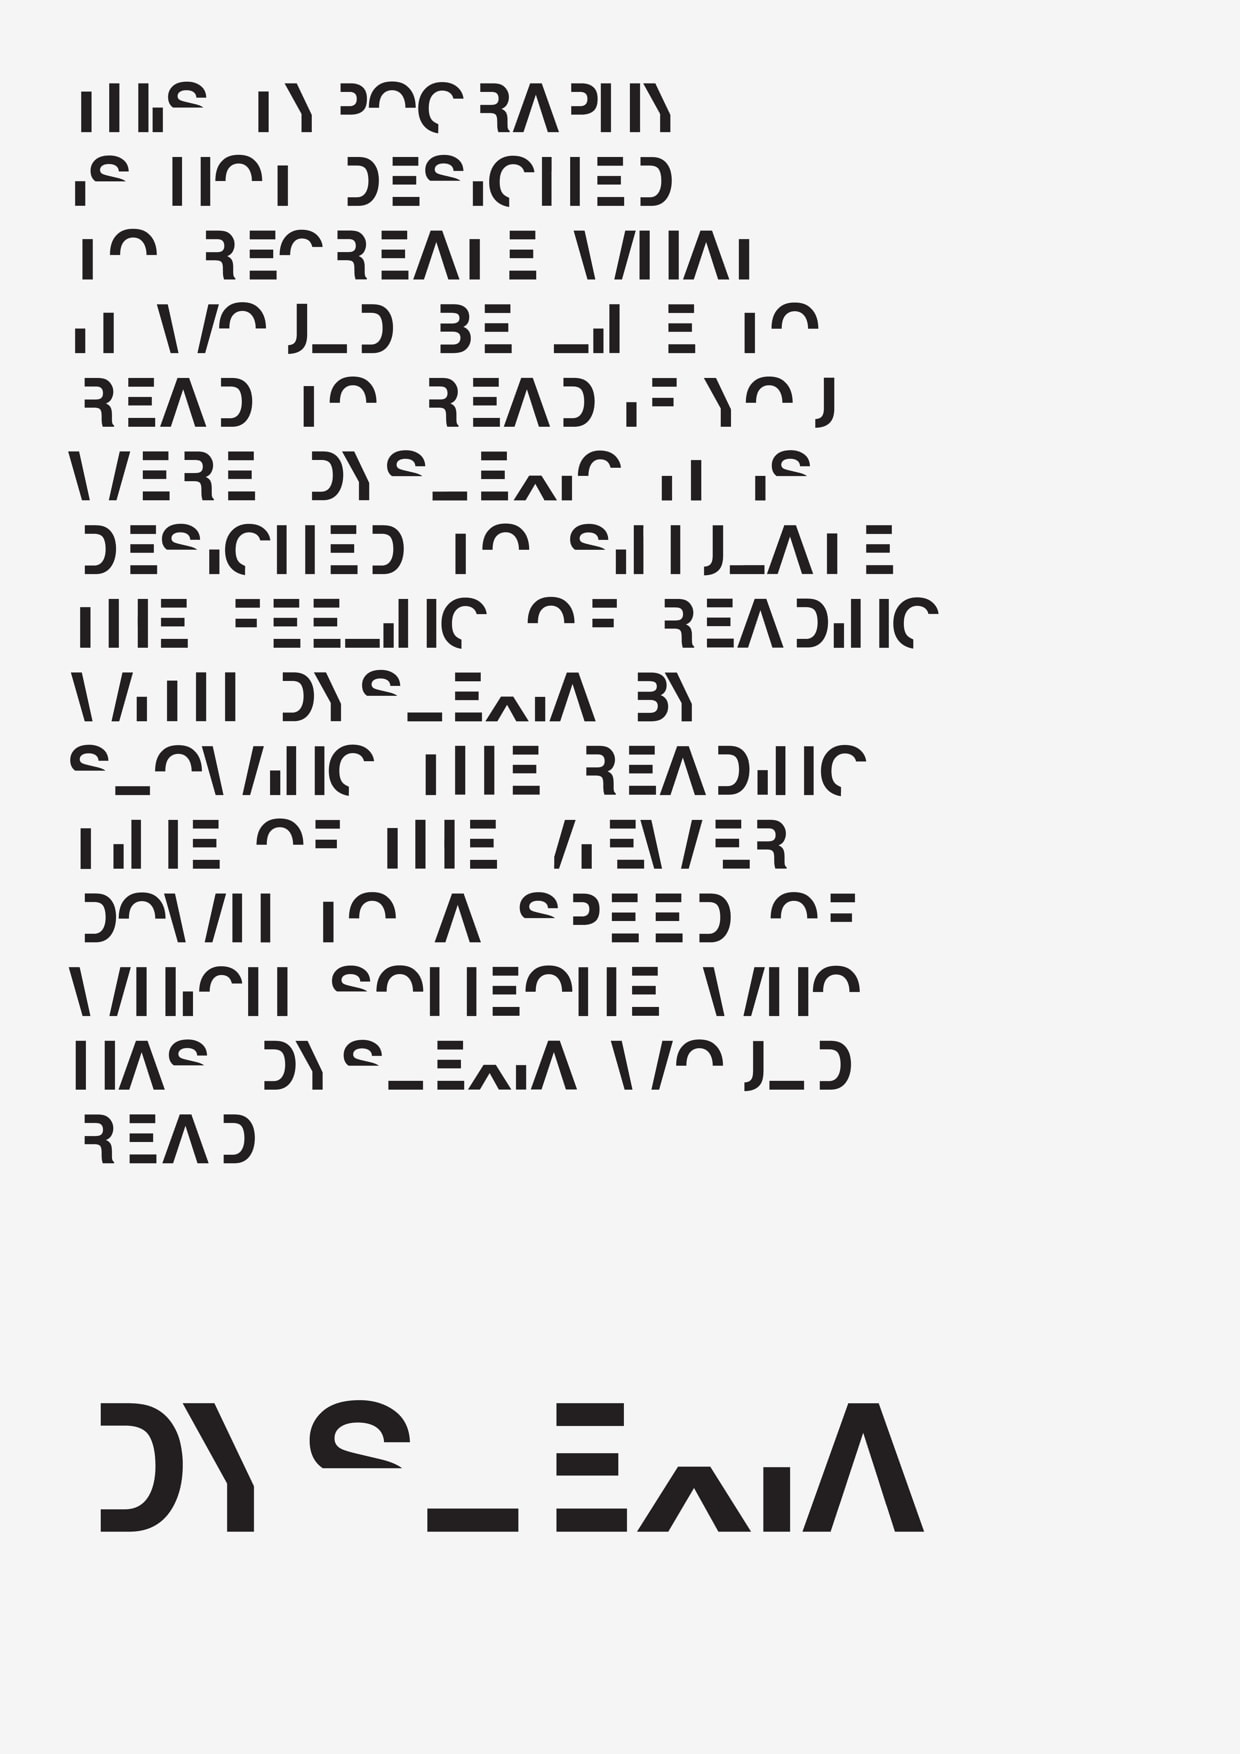 Understanding Dyslexia And Reading >> This Typeface Simulates Reading With Dyslexia The Digital Reader